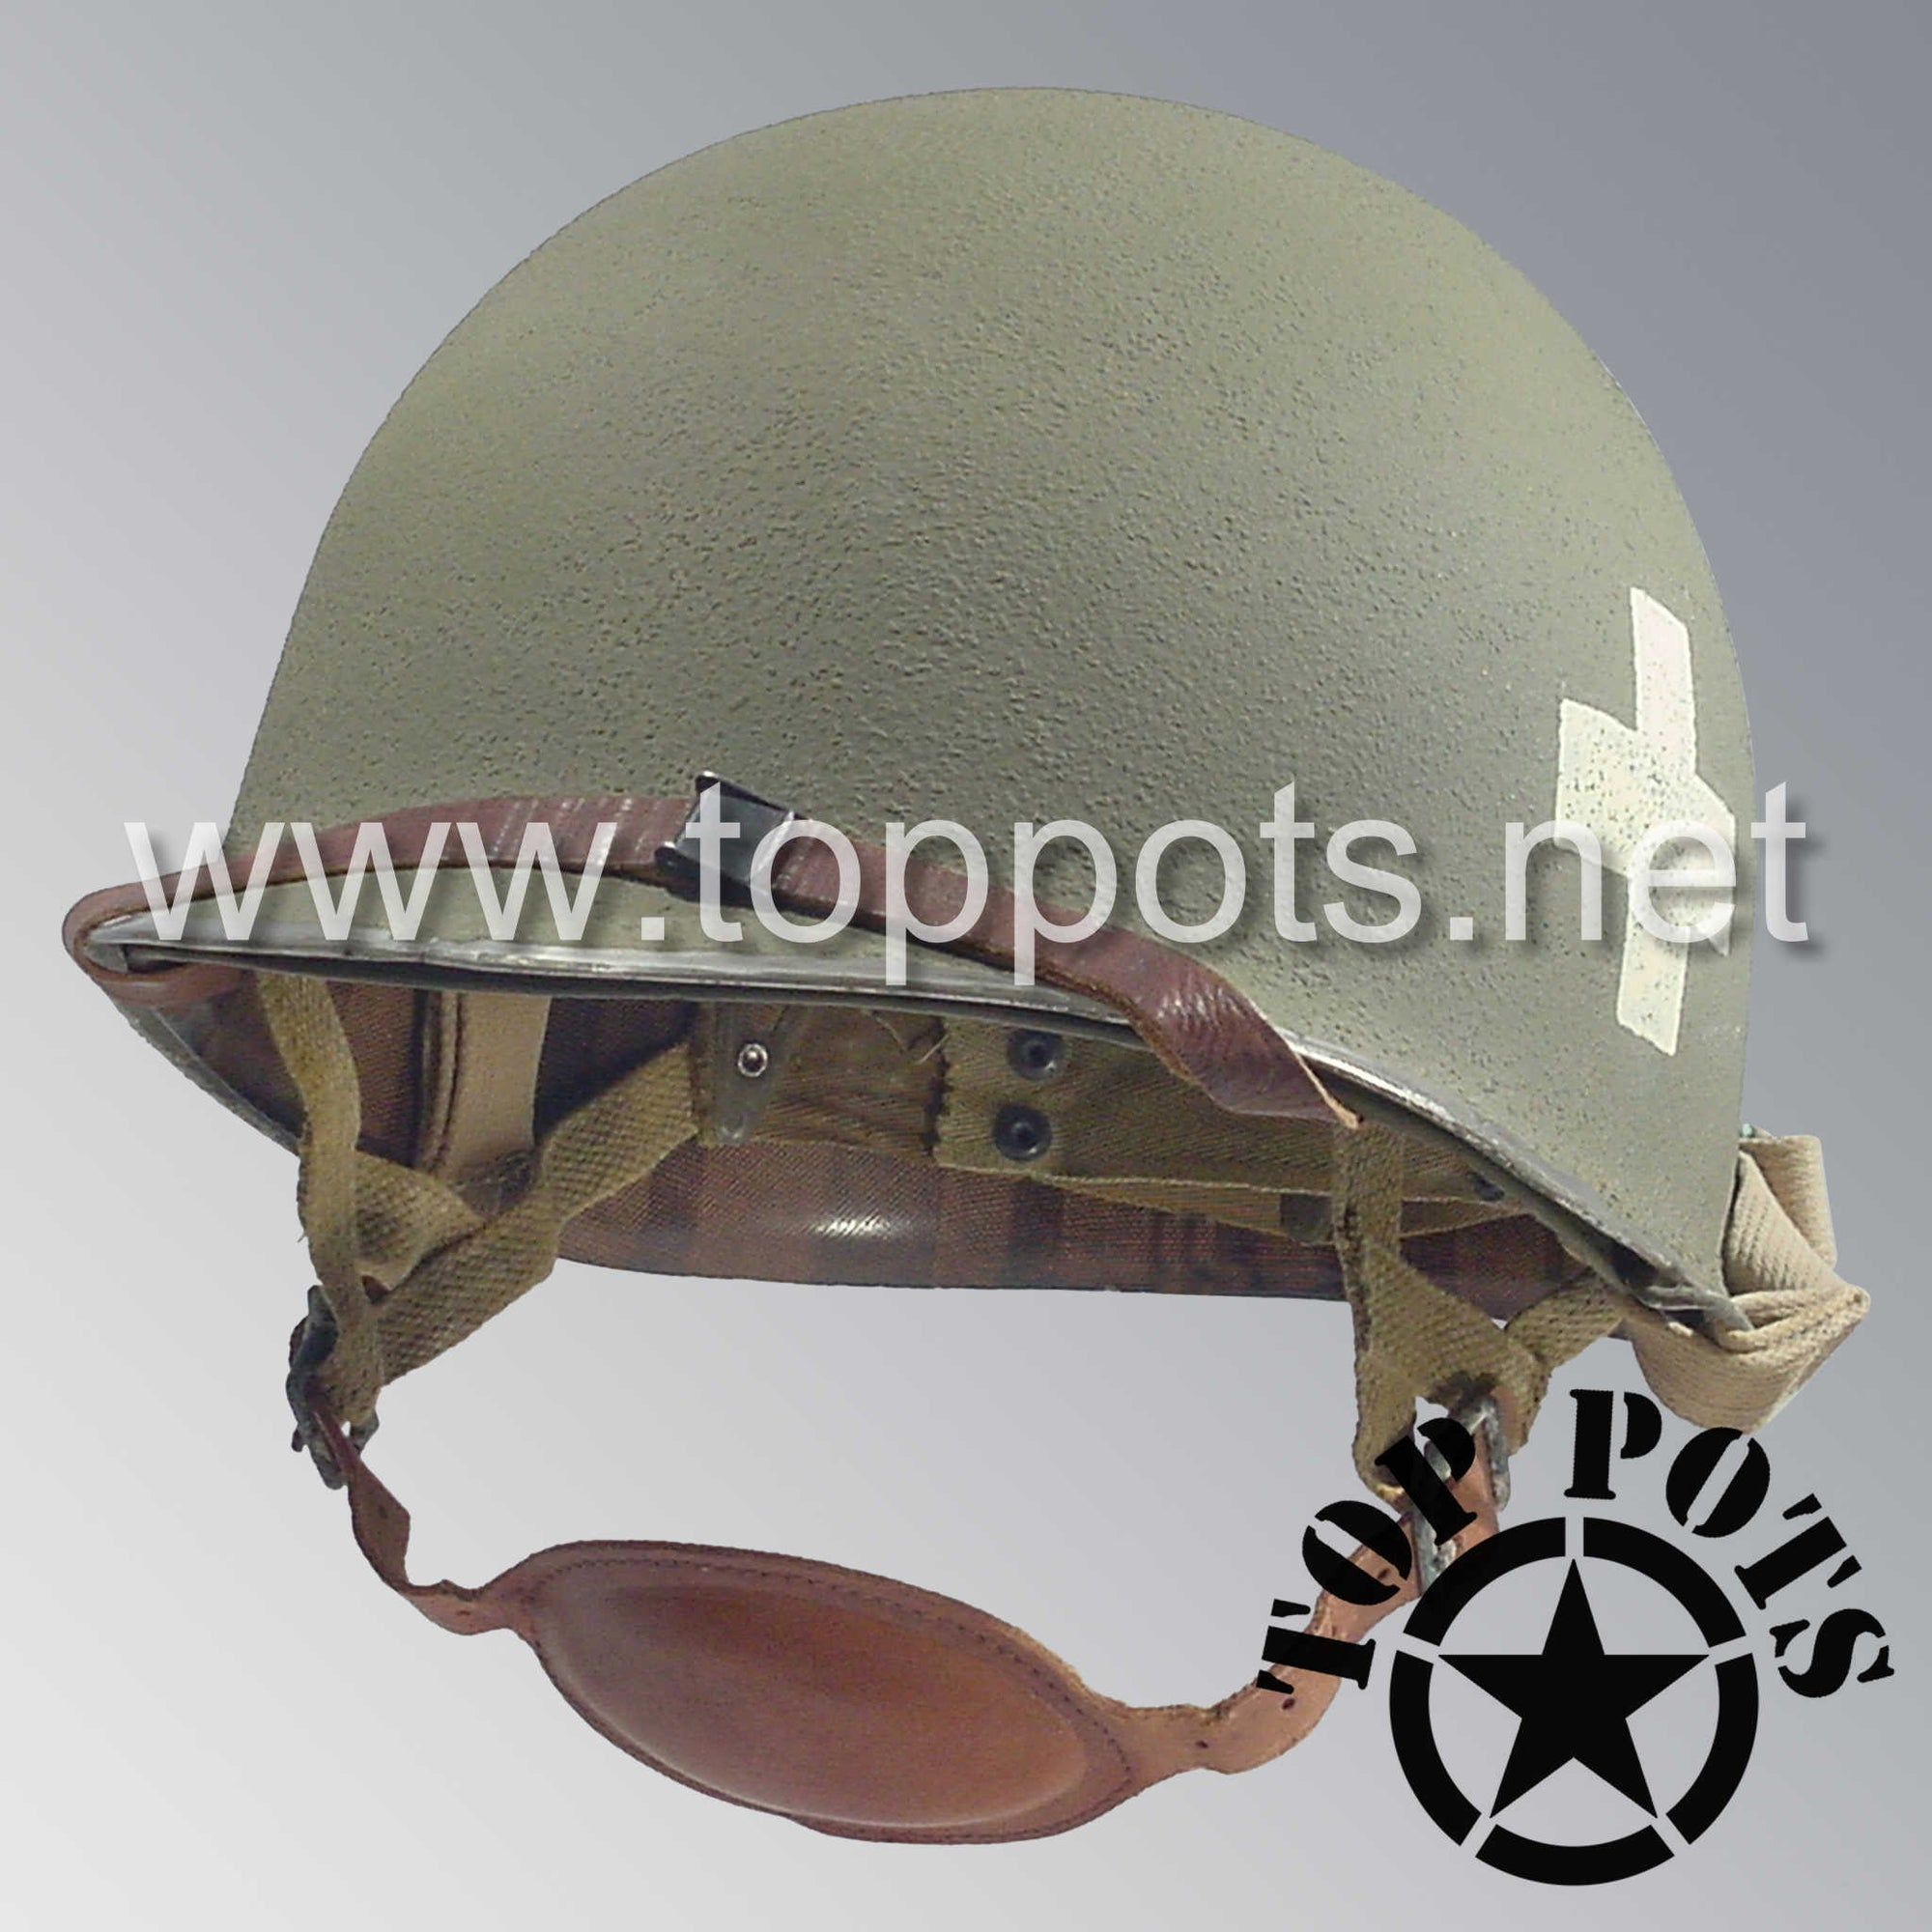 Image 1 of WWII US Army Restored Original M1C Paratrooper Airborne Helmet Swivel Bale Shell and Liner with 101st 326th Airborne Medical Company NCO Emblem